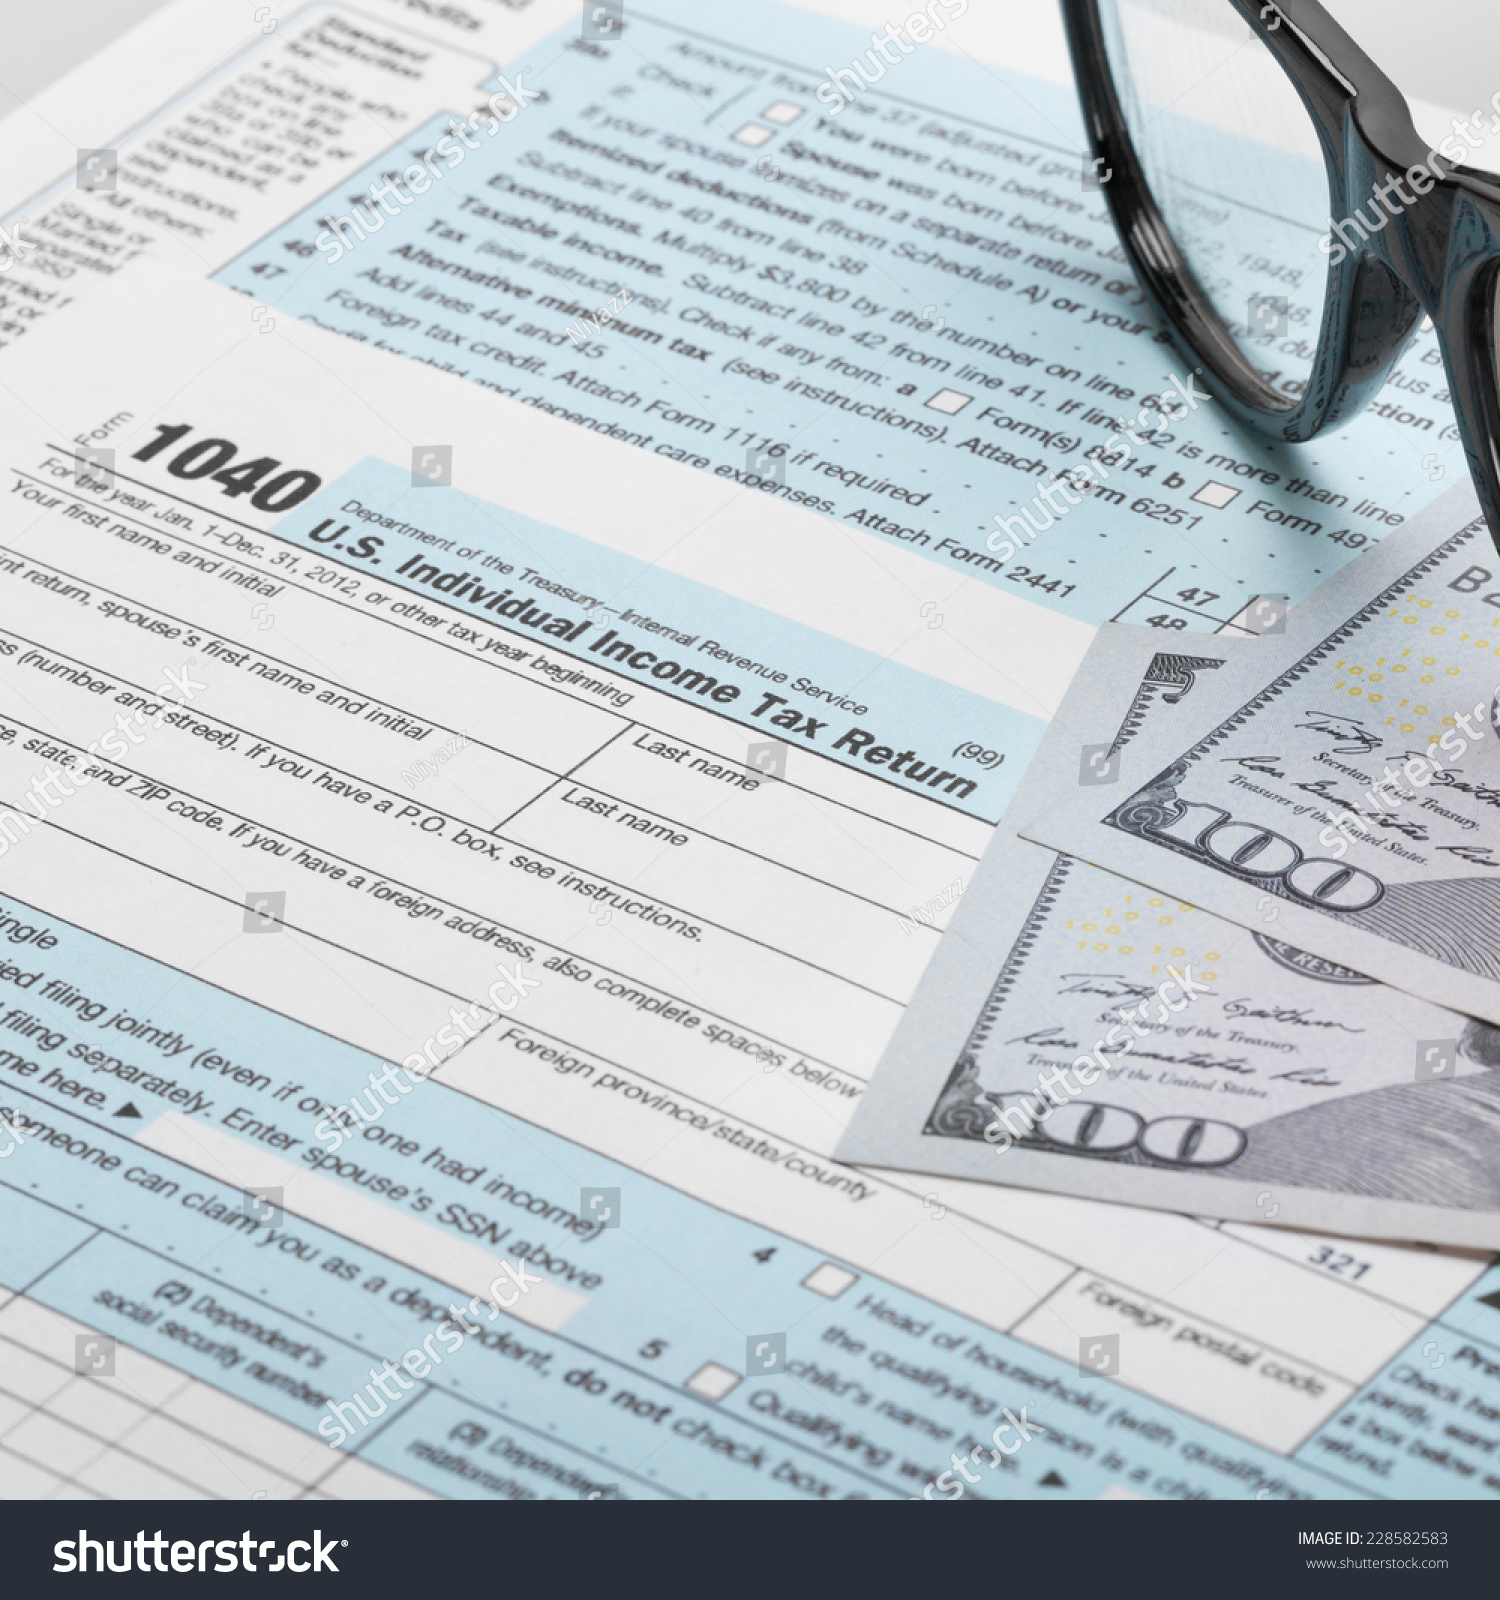 United States federal income tax return IRS 1040 documents | EZ Canvas